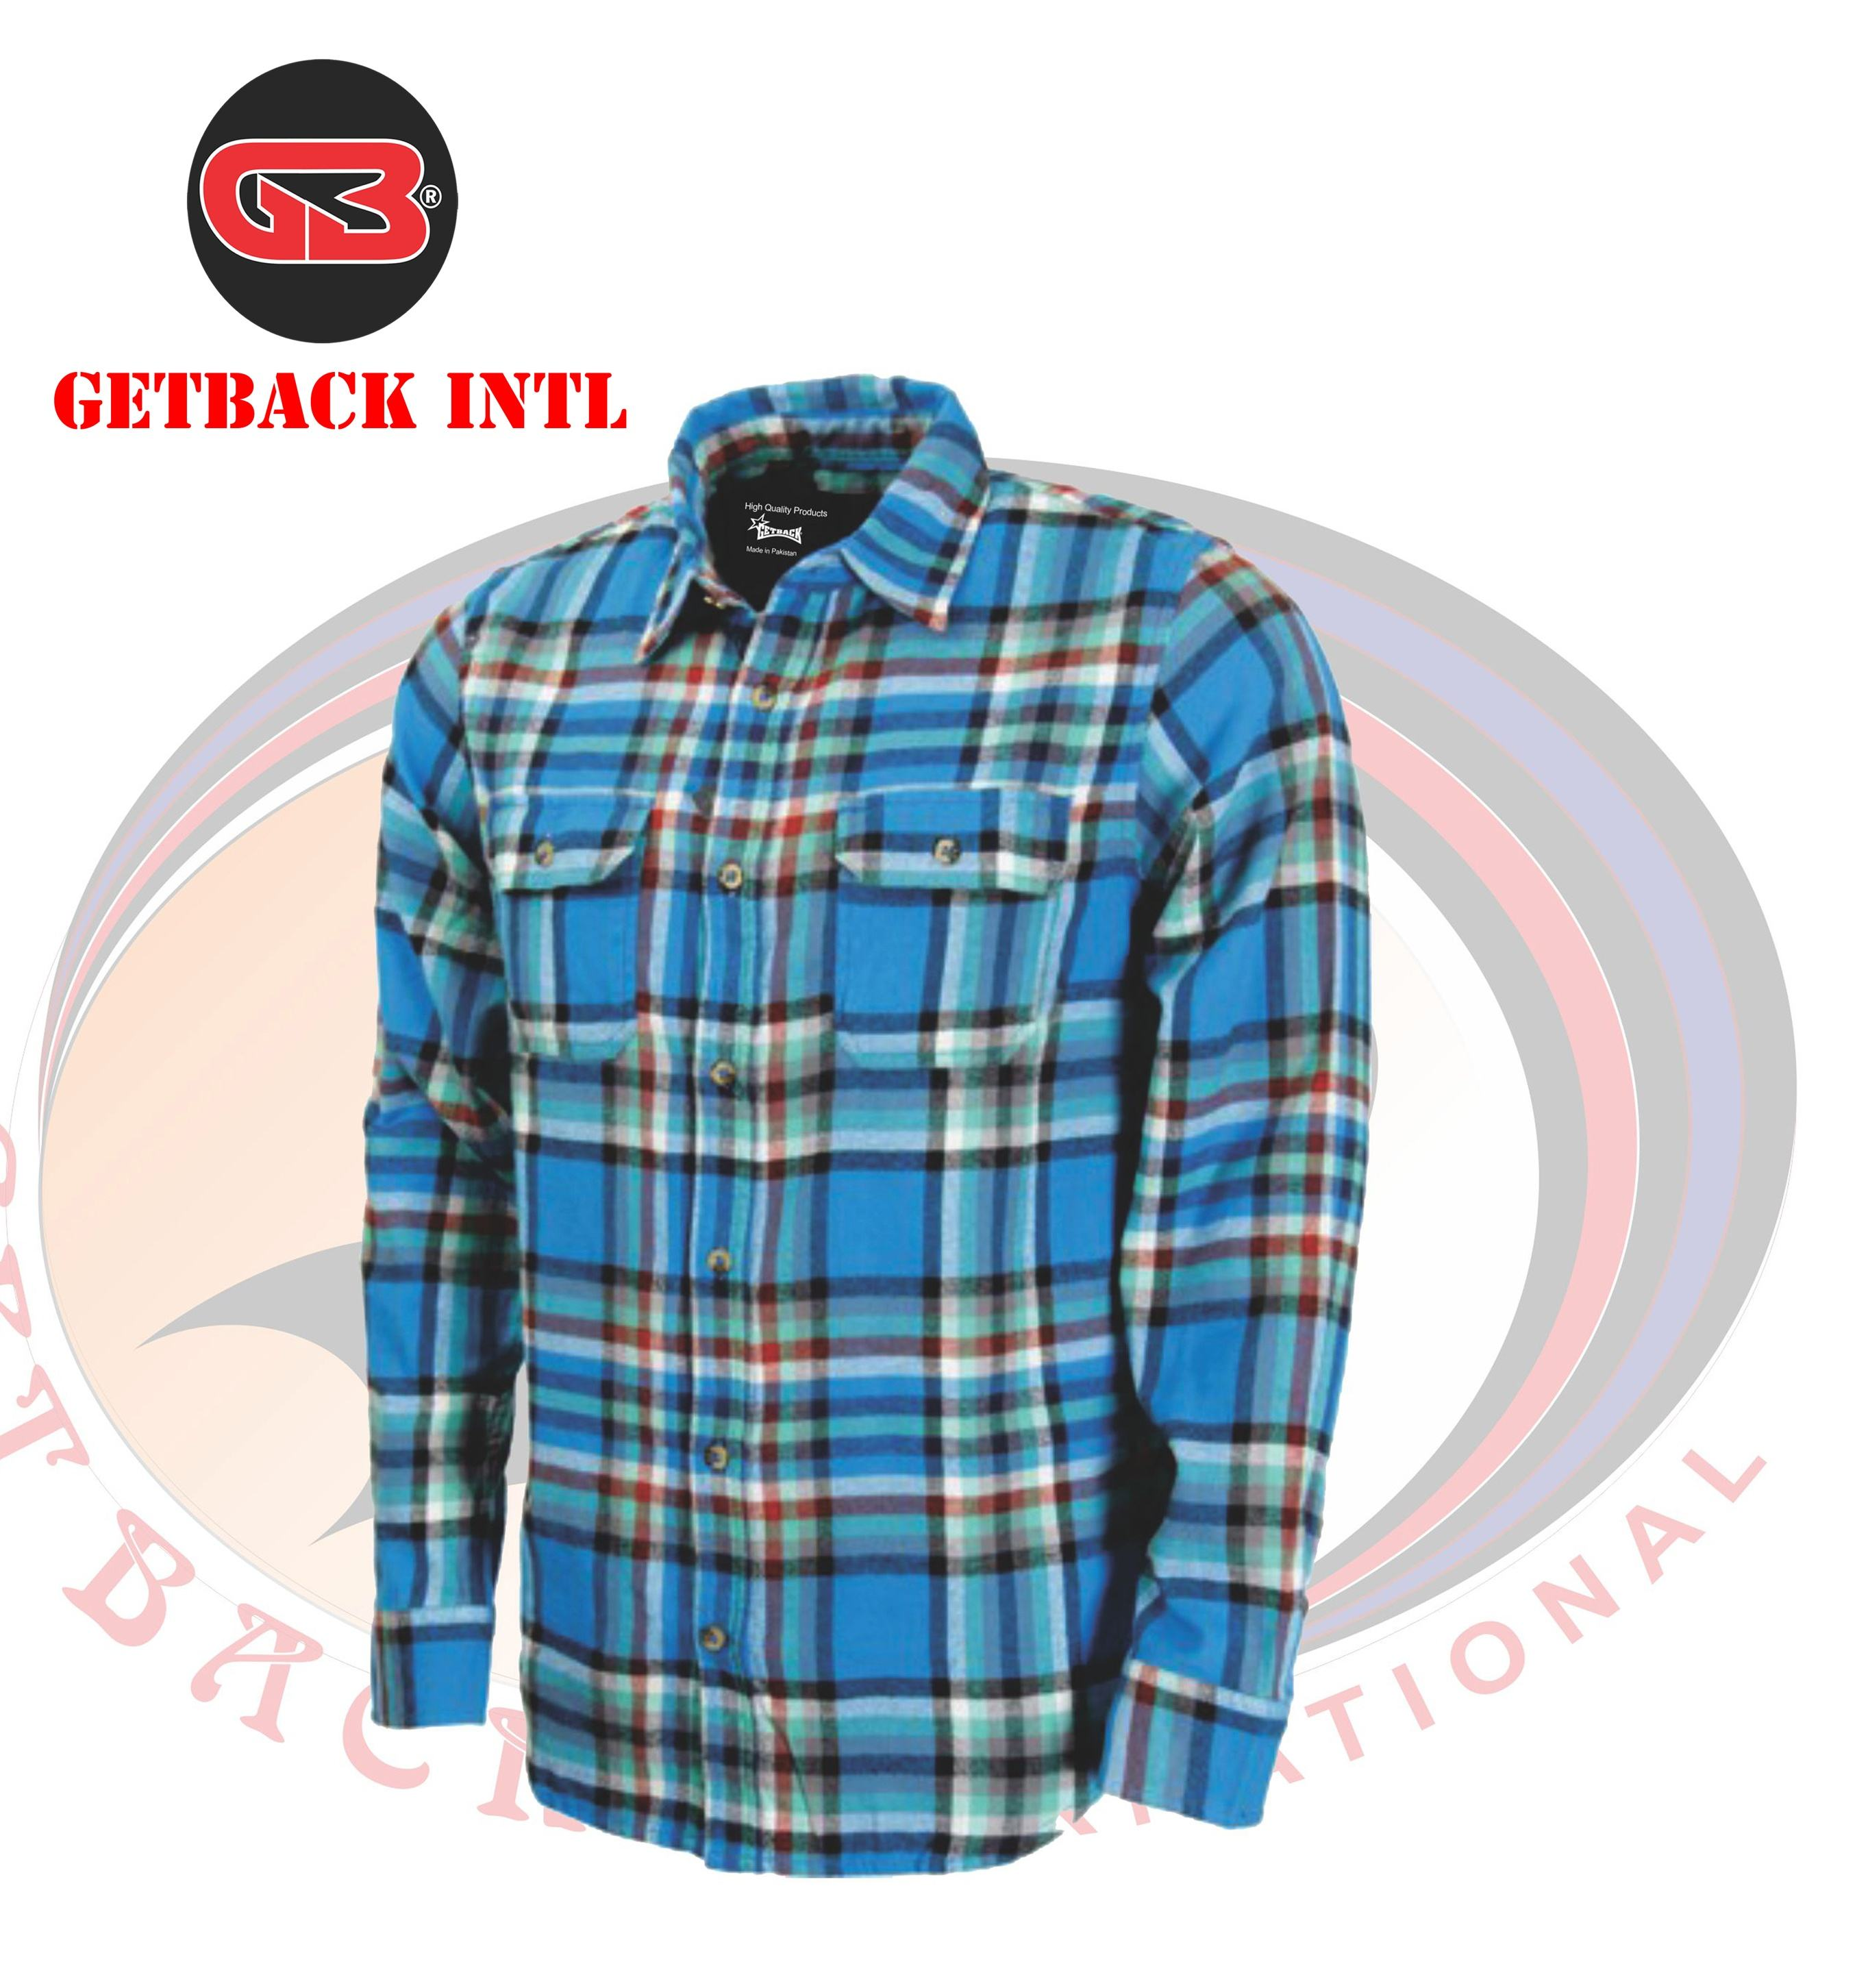 Custom Flannel Shirts with Pockets and Buttons